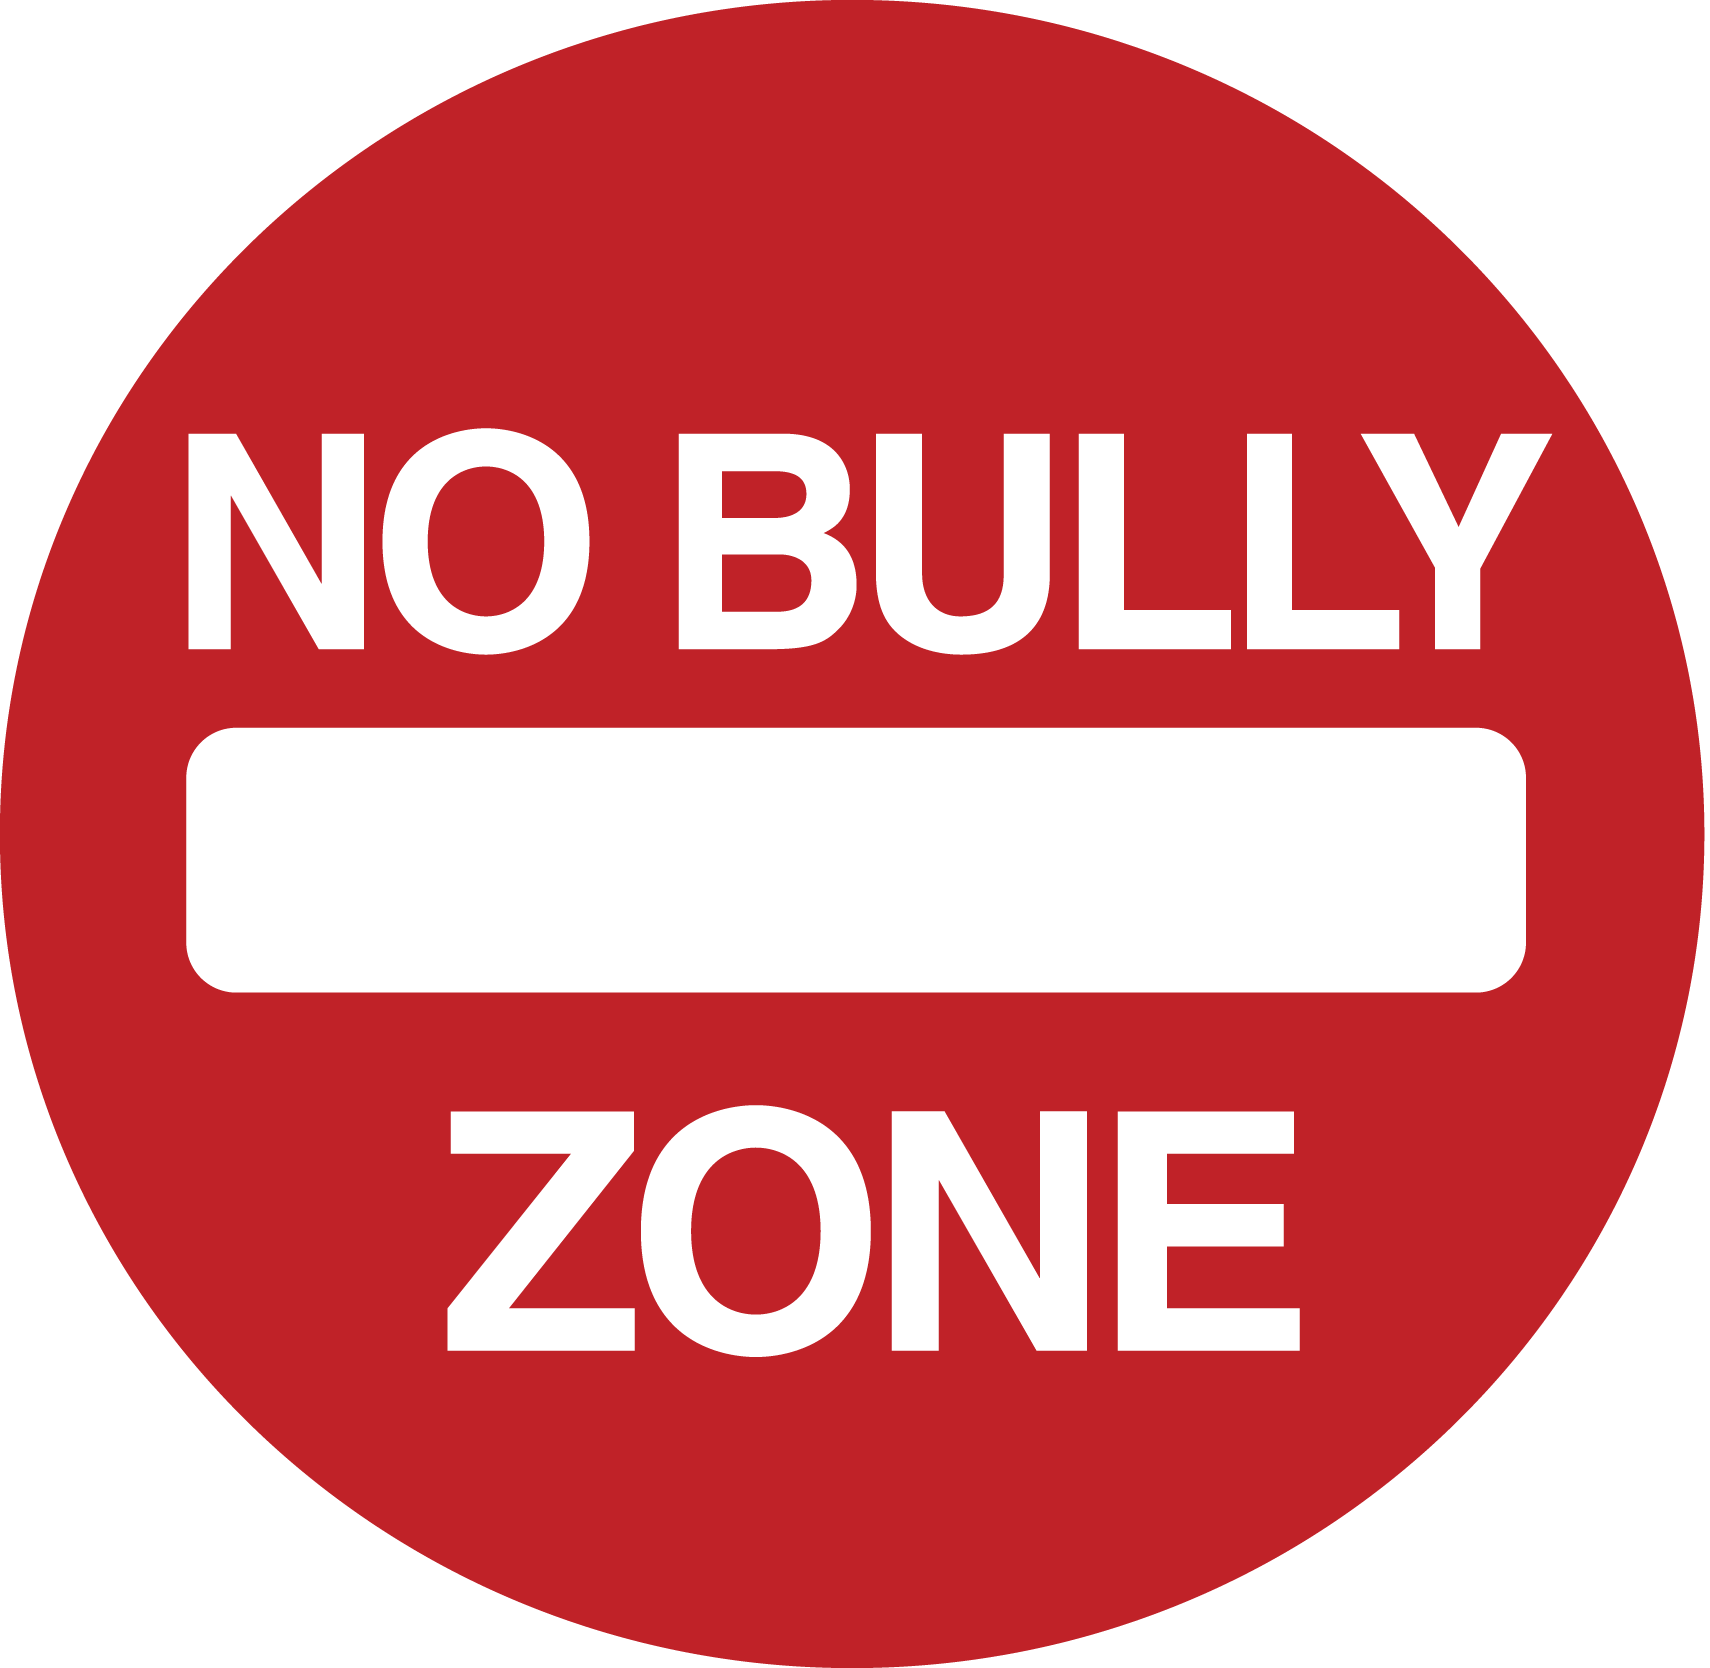 Words Clipart Bullying Words Bullying Transparent Free